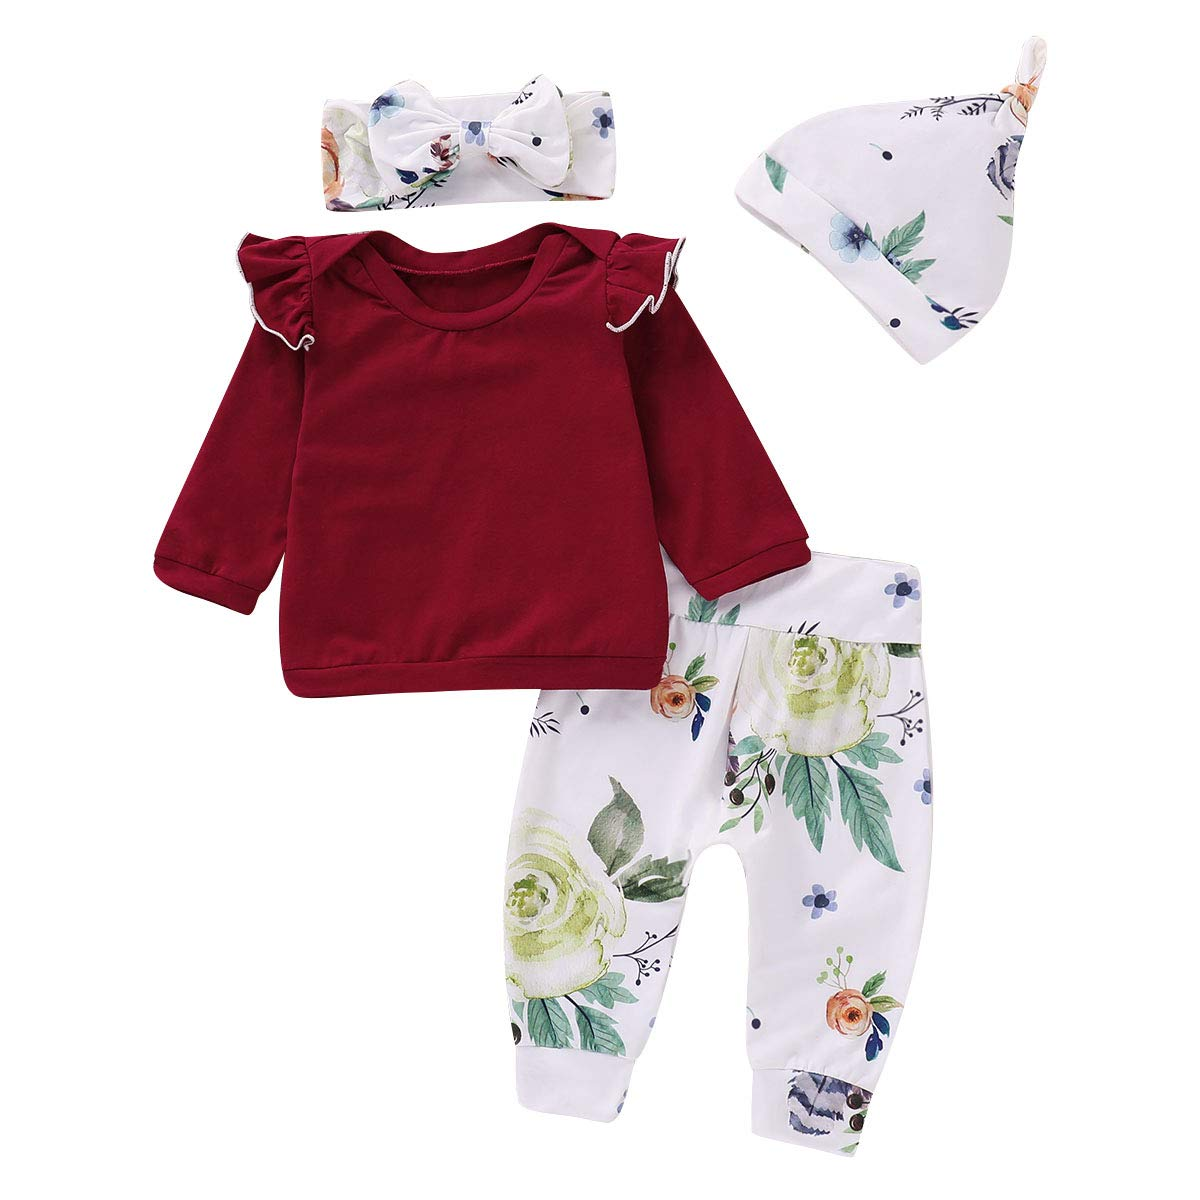 Toddler Baby Girls Fall Outfit Long Sleeve Ruffle Shirts+Floral Pants+Headband+Hat Clothes Set 4Pcs